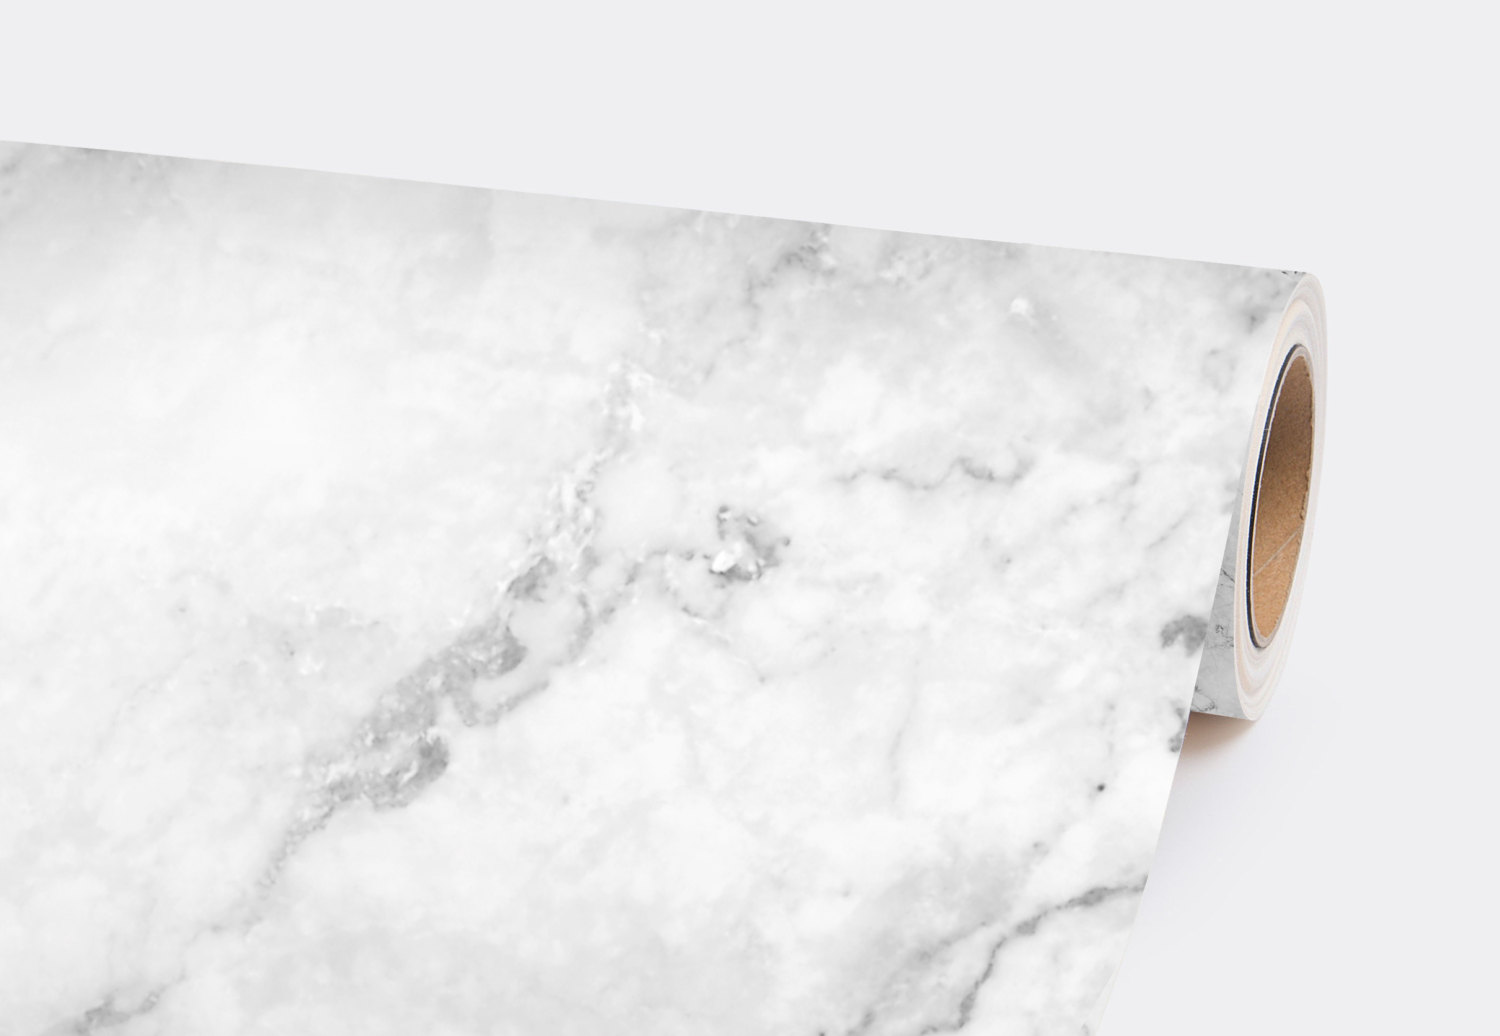 White Marble Removable Wallpaper Stone Texture Wall Mural Peel And Stick Wallpaper Self